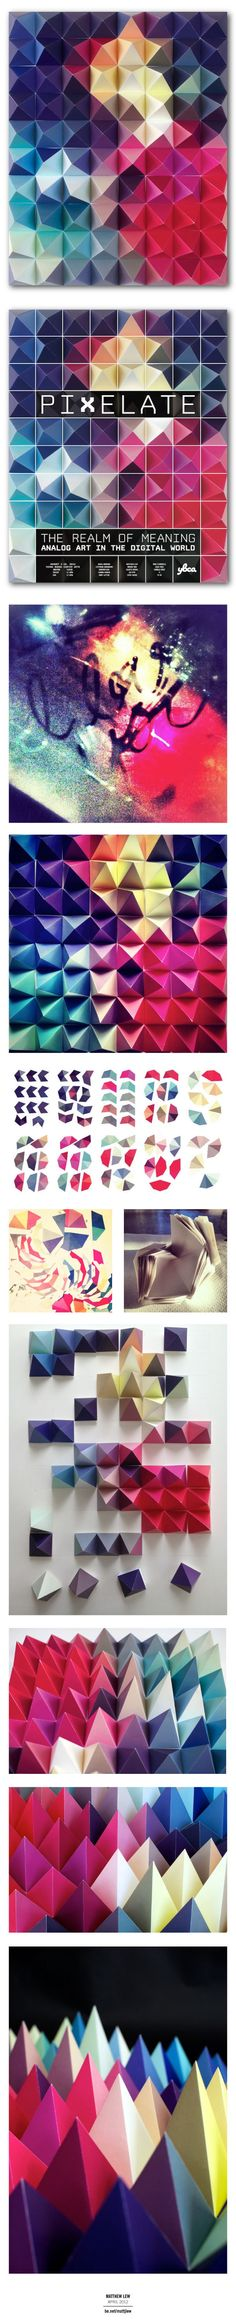 Pixelate - The Realm Of Meaning by Matthew Lew, via Behance #design